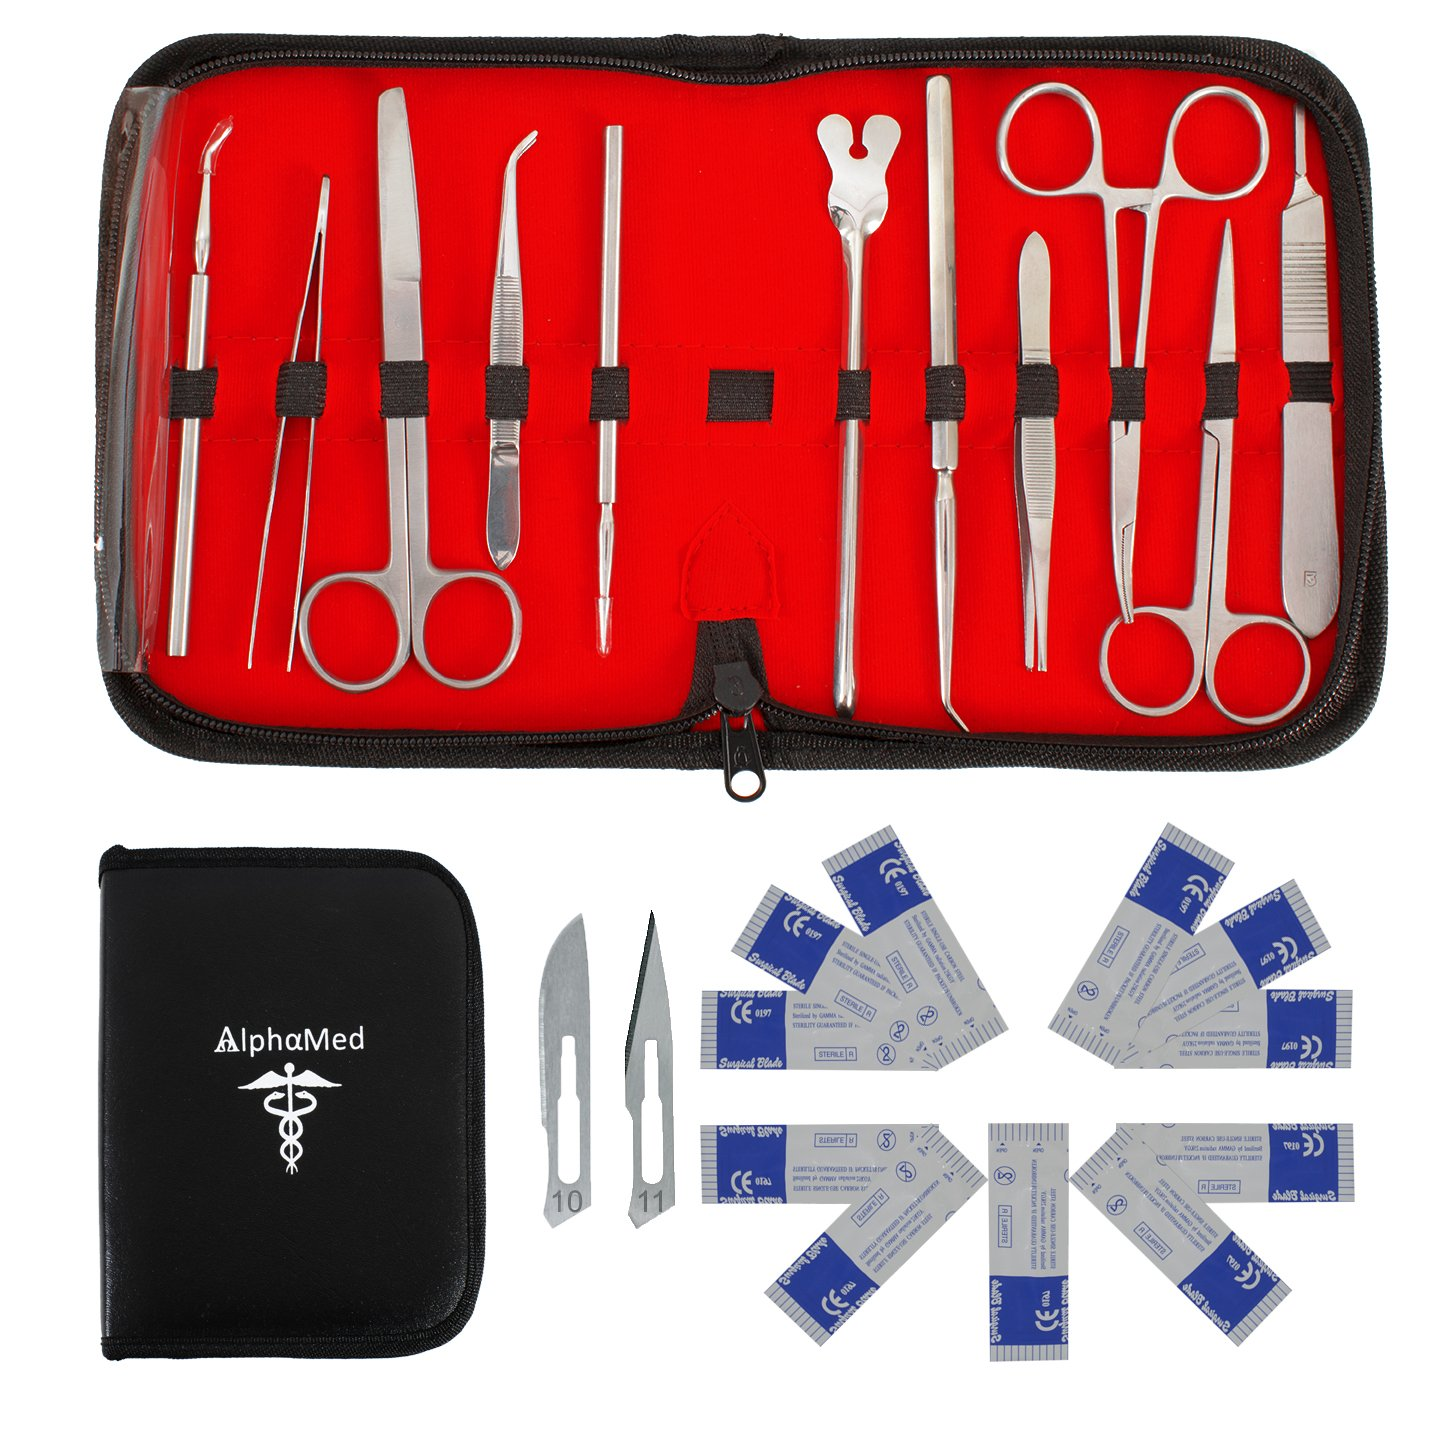 22 Pcs Advanced Dissecting Kit with Scalpel Knife Handle Blades and Stainless Steel Tools Set with Case for Dissection for Students and Teachers in Anatomy Botany Biology Medical Veterinary Entomology by AlphaMed